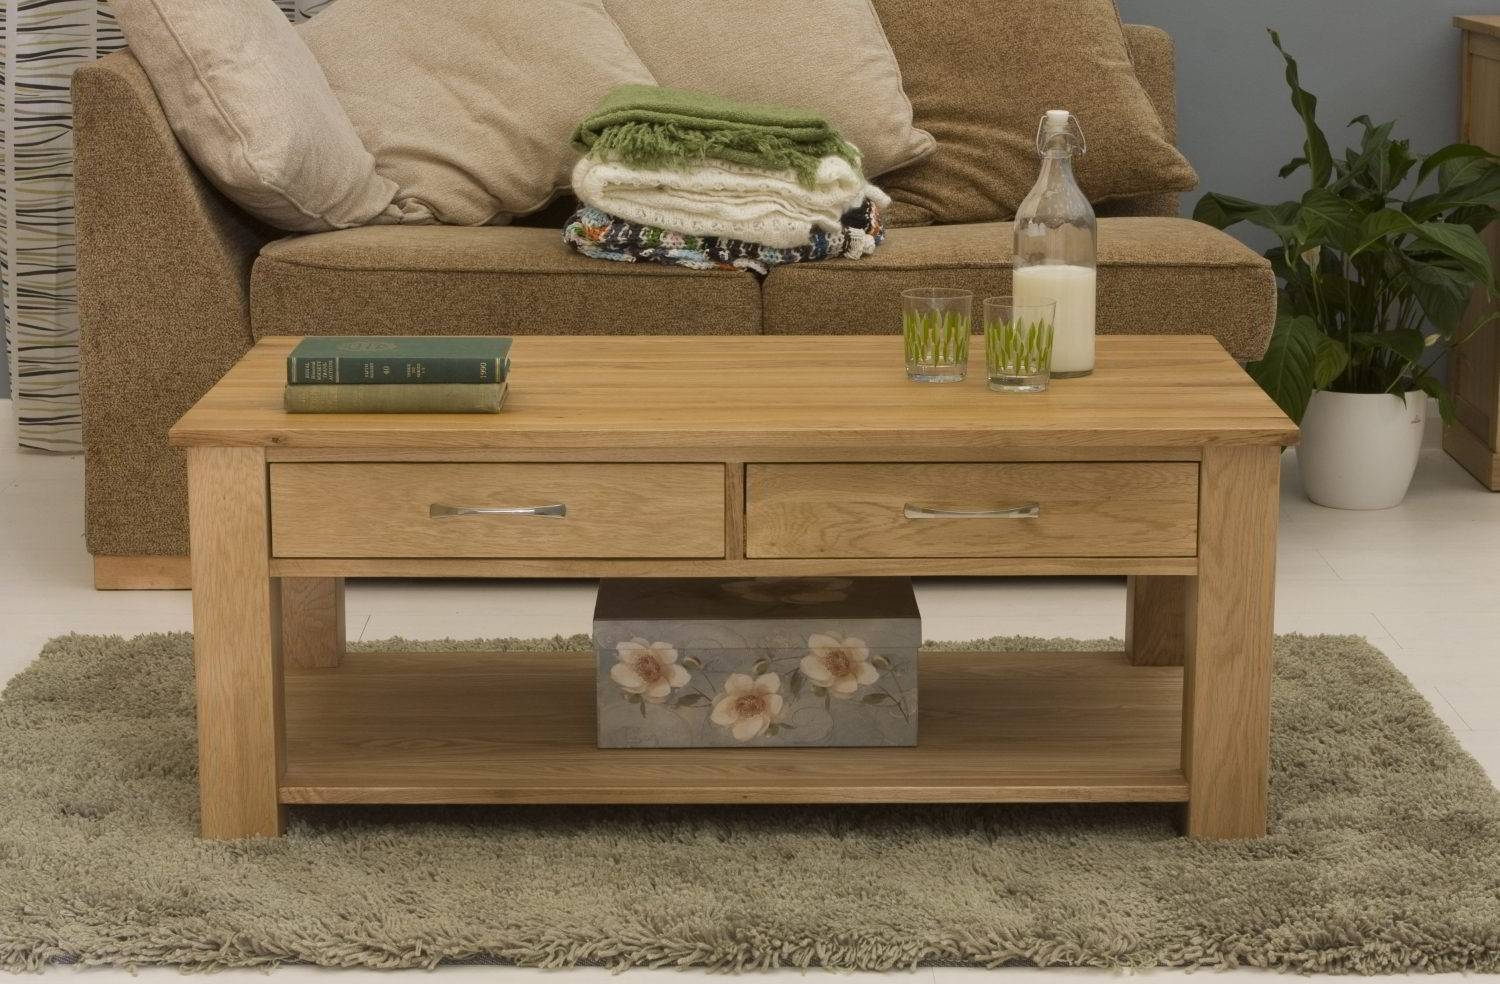 Conran Solid Oak Living Room Lounge Furniture Four Drawer Storage Within Oak Coffee Table With Storage (View 2 of 15)